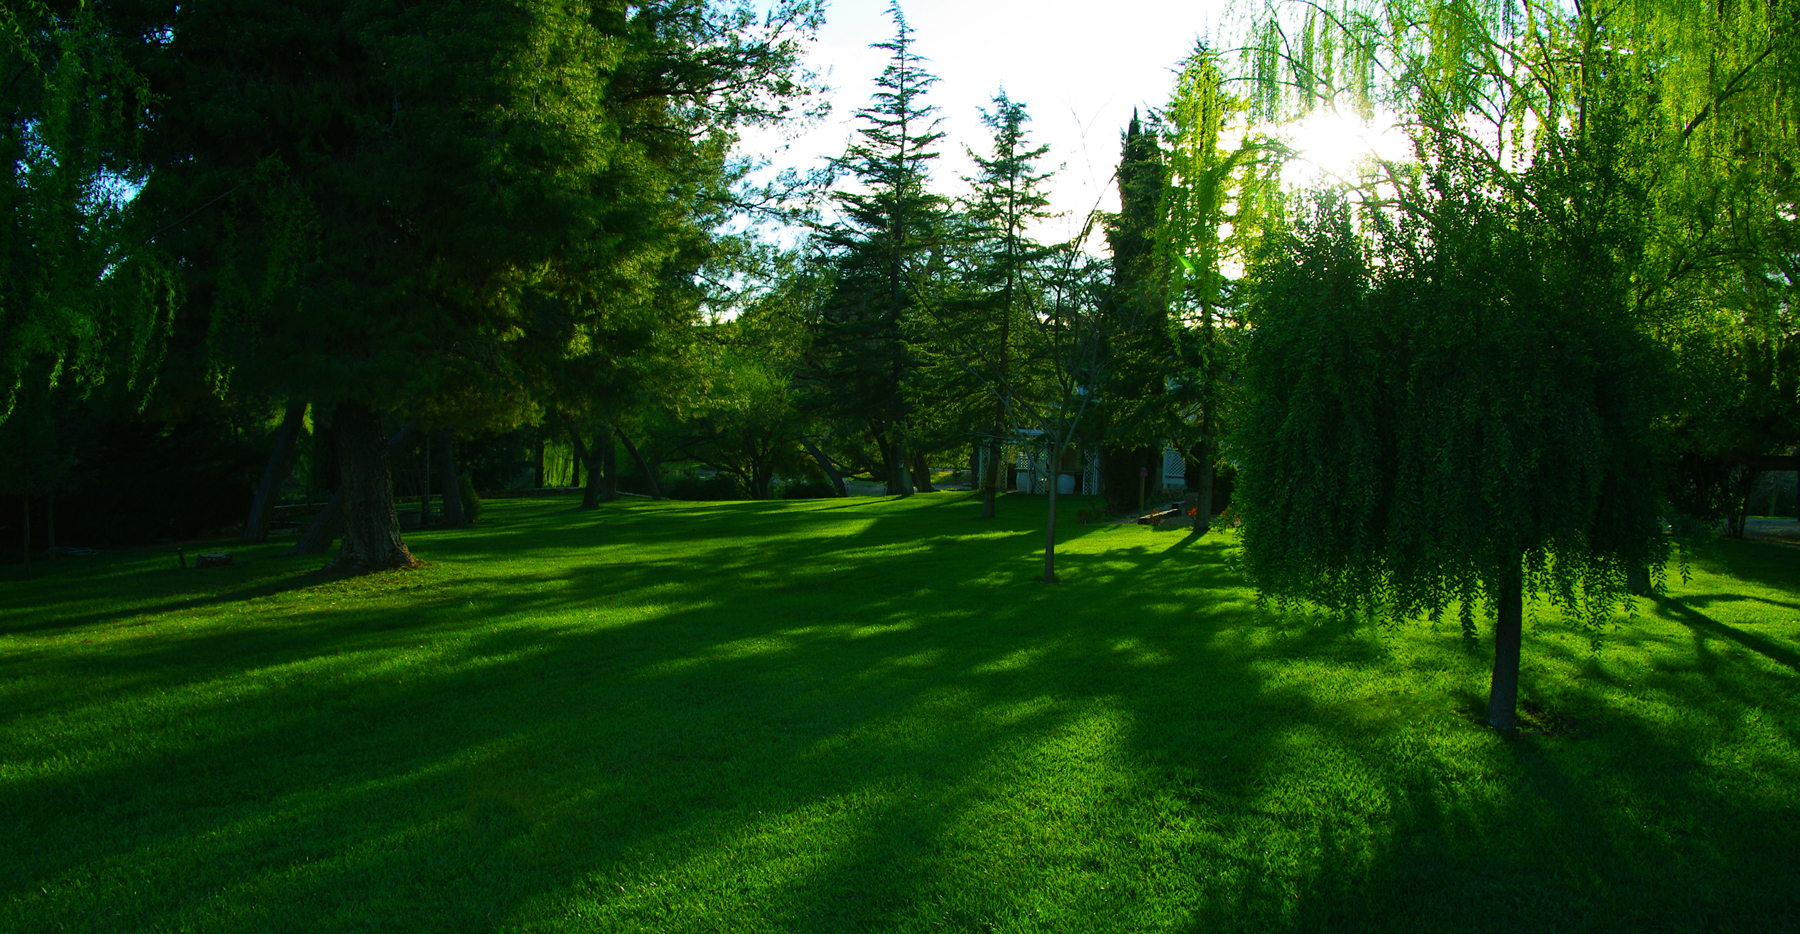 Shadows on the Lawn